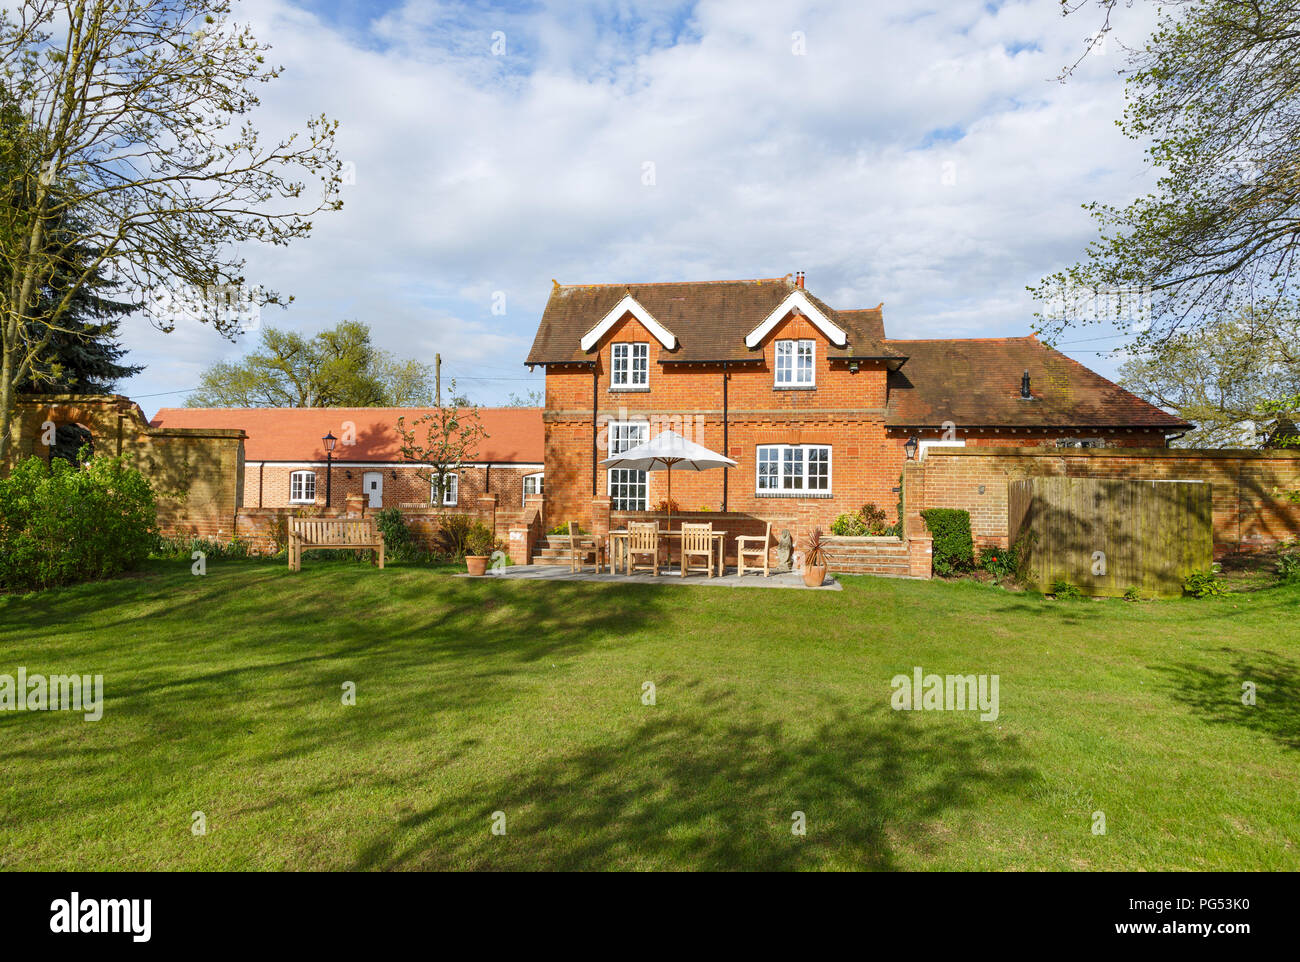 Victorian former coach house and stables with garden and patio. The historic building has been converted into a modern family home - Stock Image